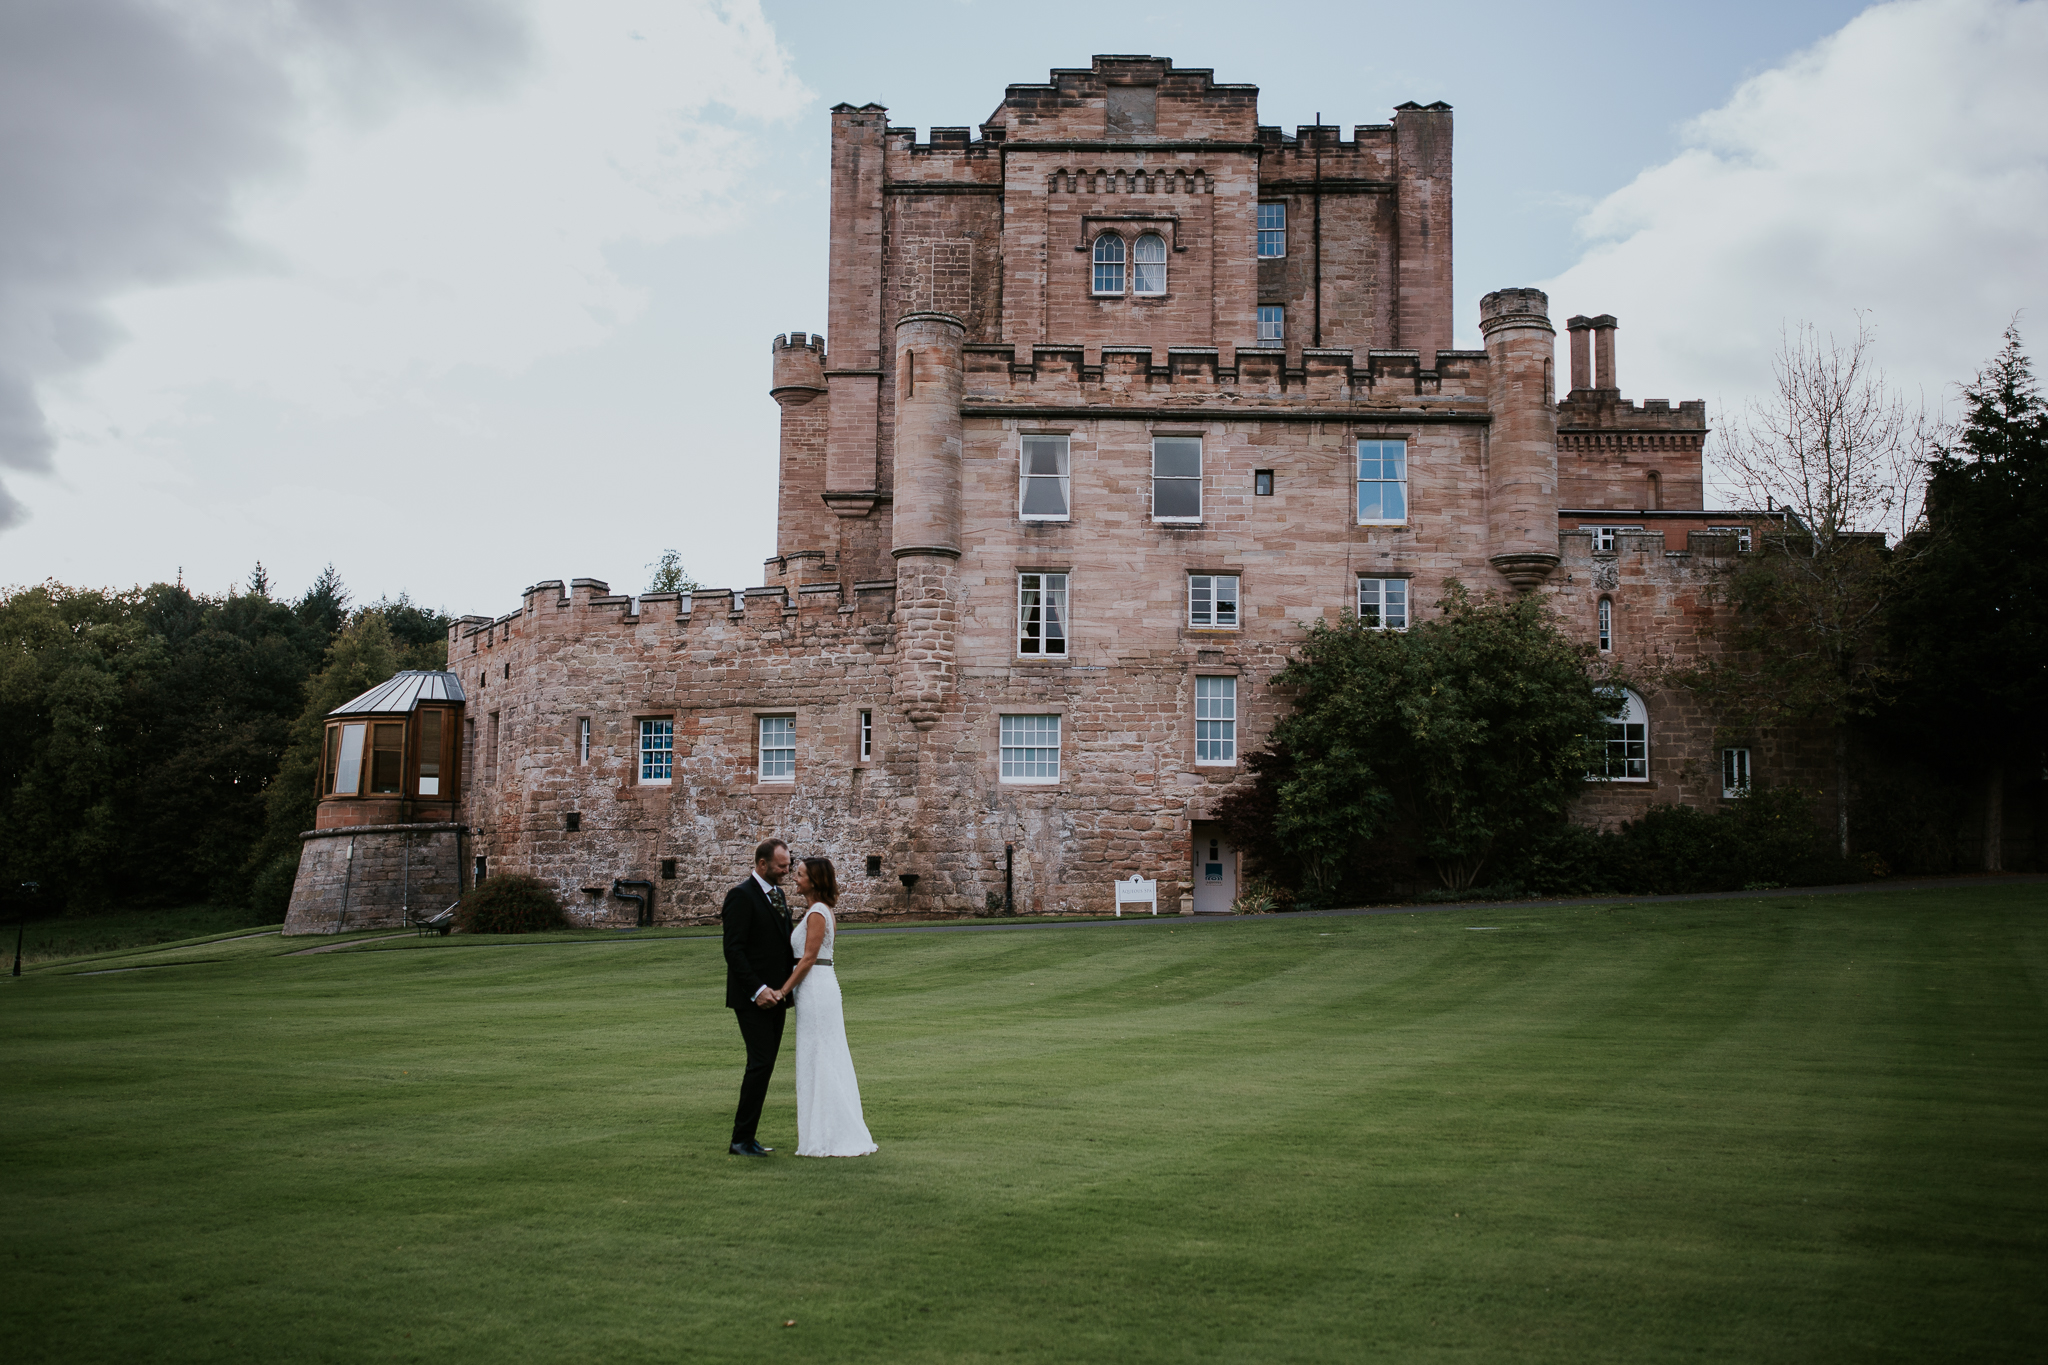 Couple shoot at the castle ground.